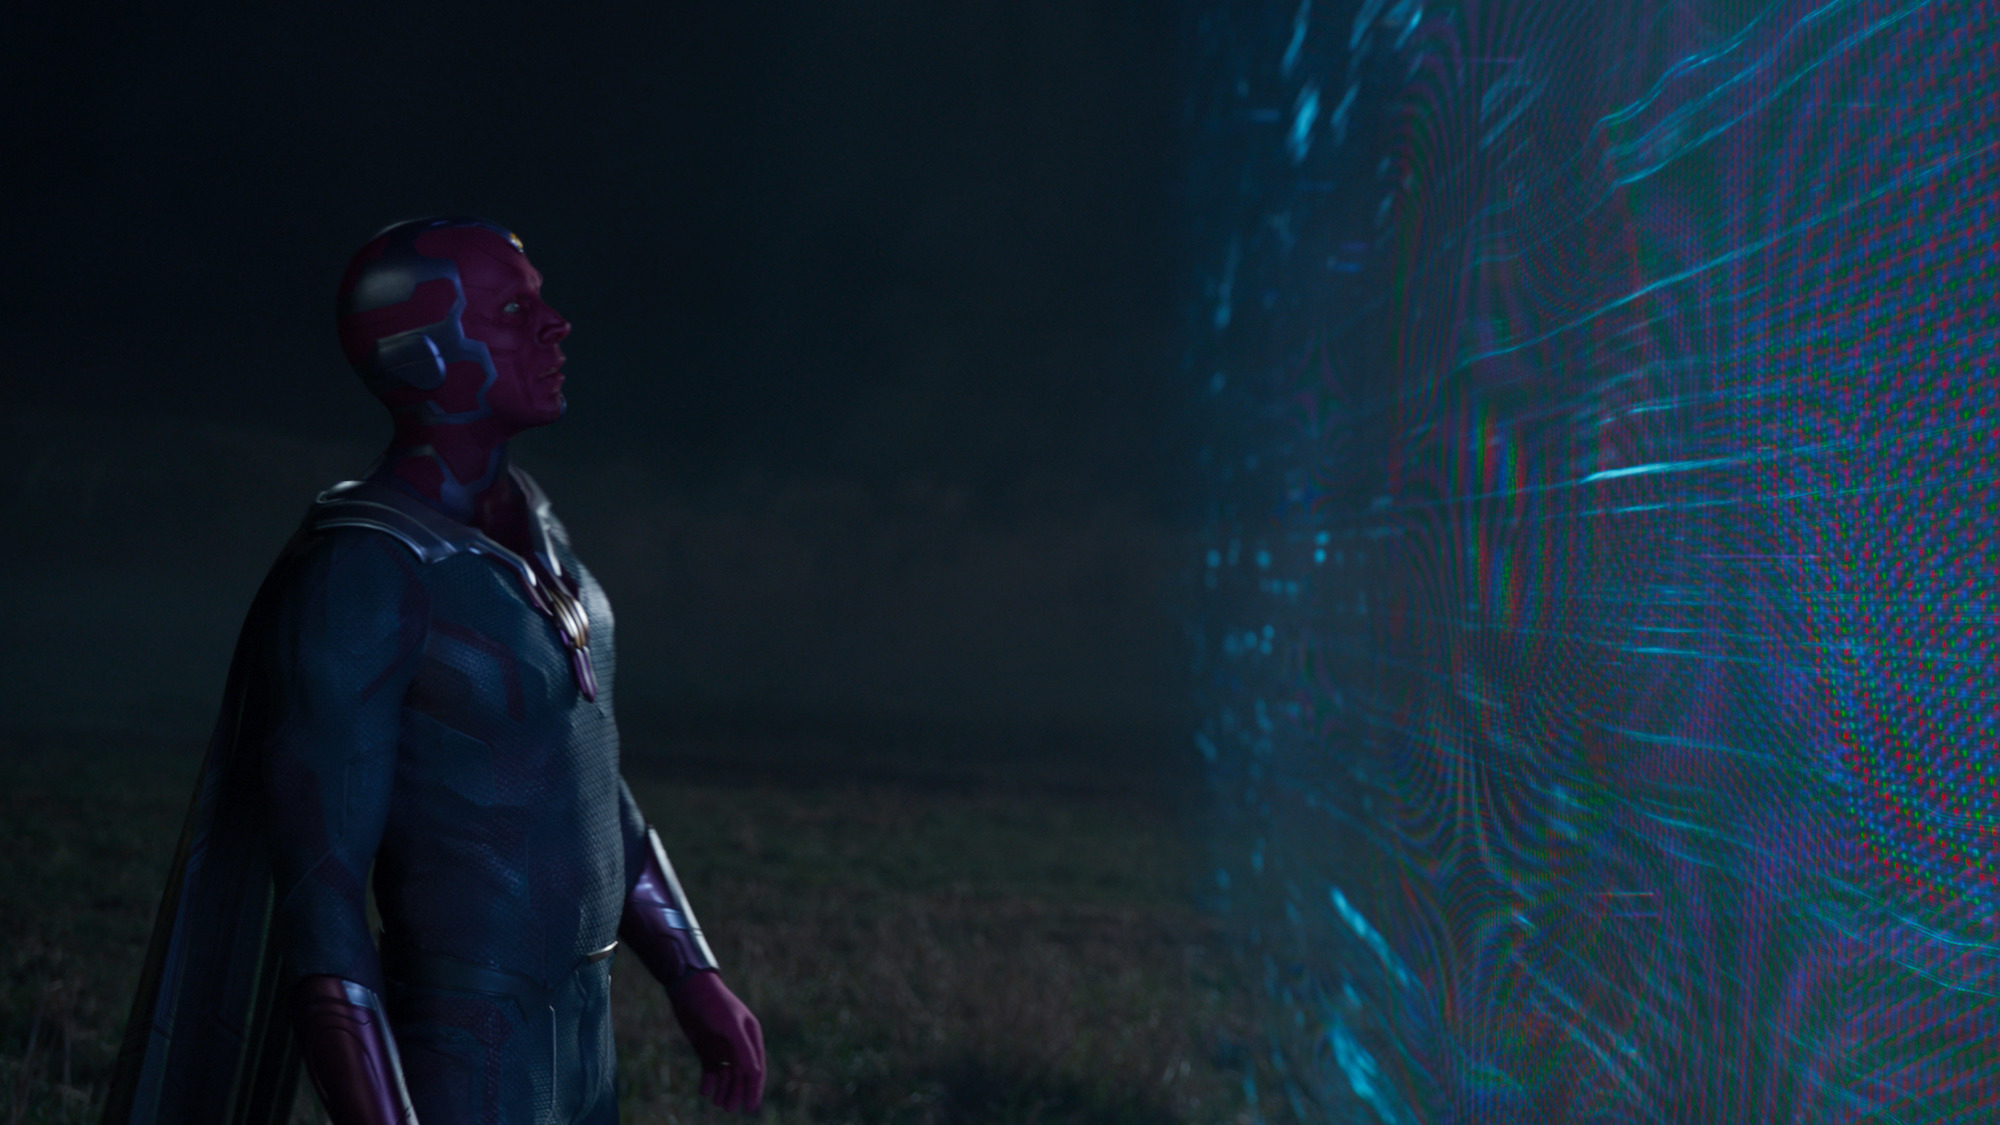 Paul Bettany as Vision in 'WandaVision' Episode 6, almost outside of the Hex